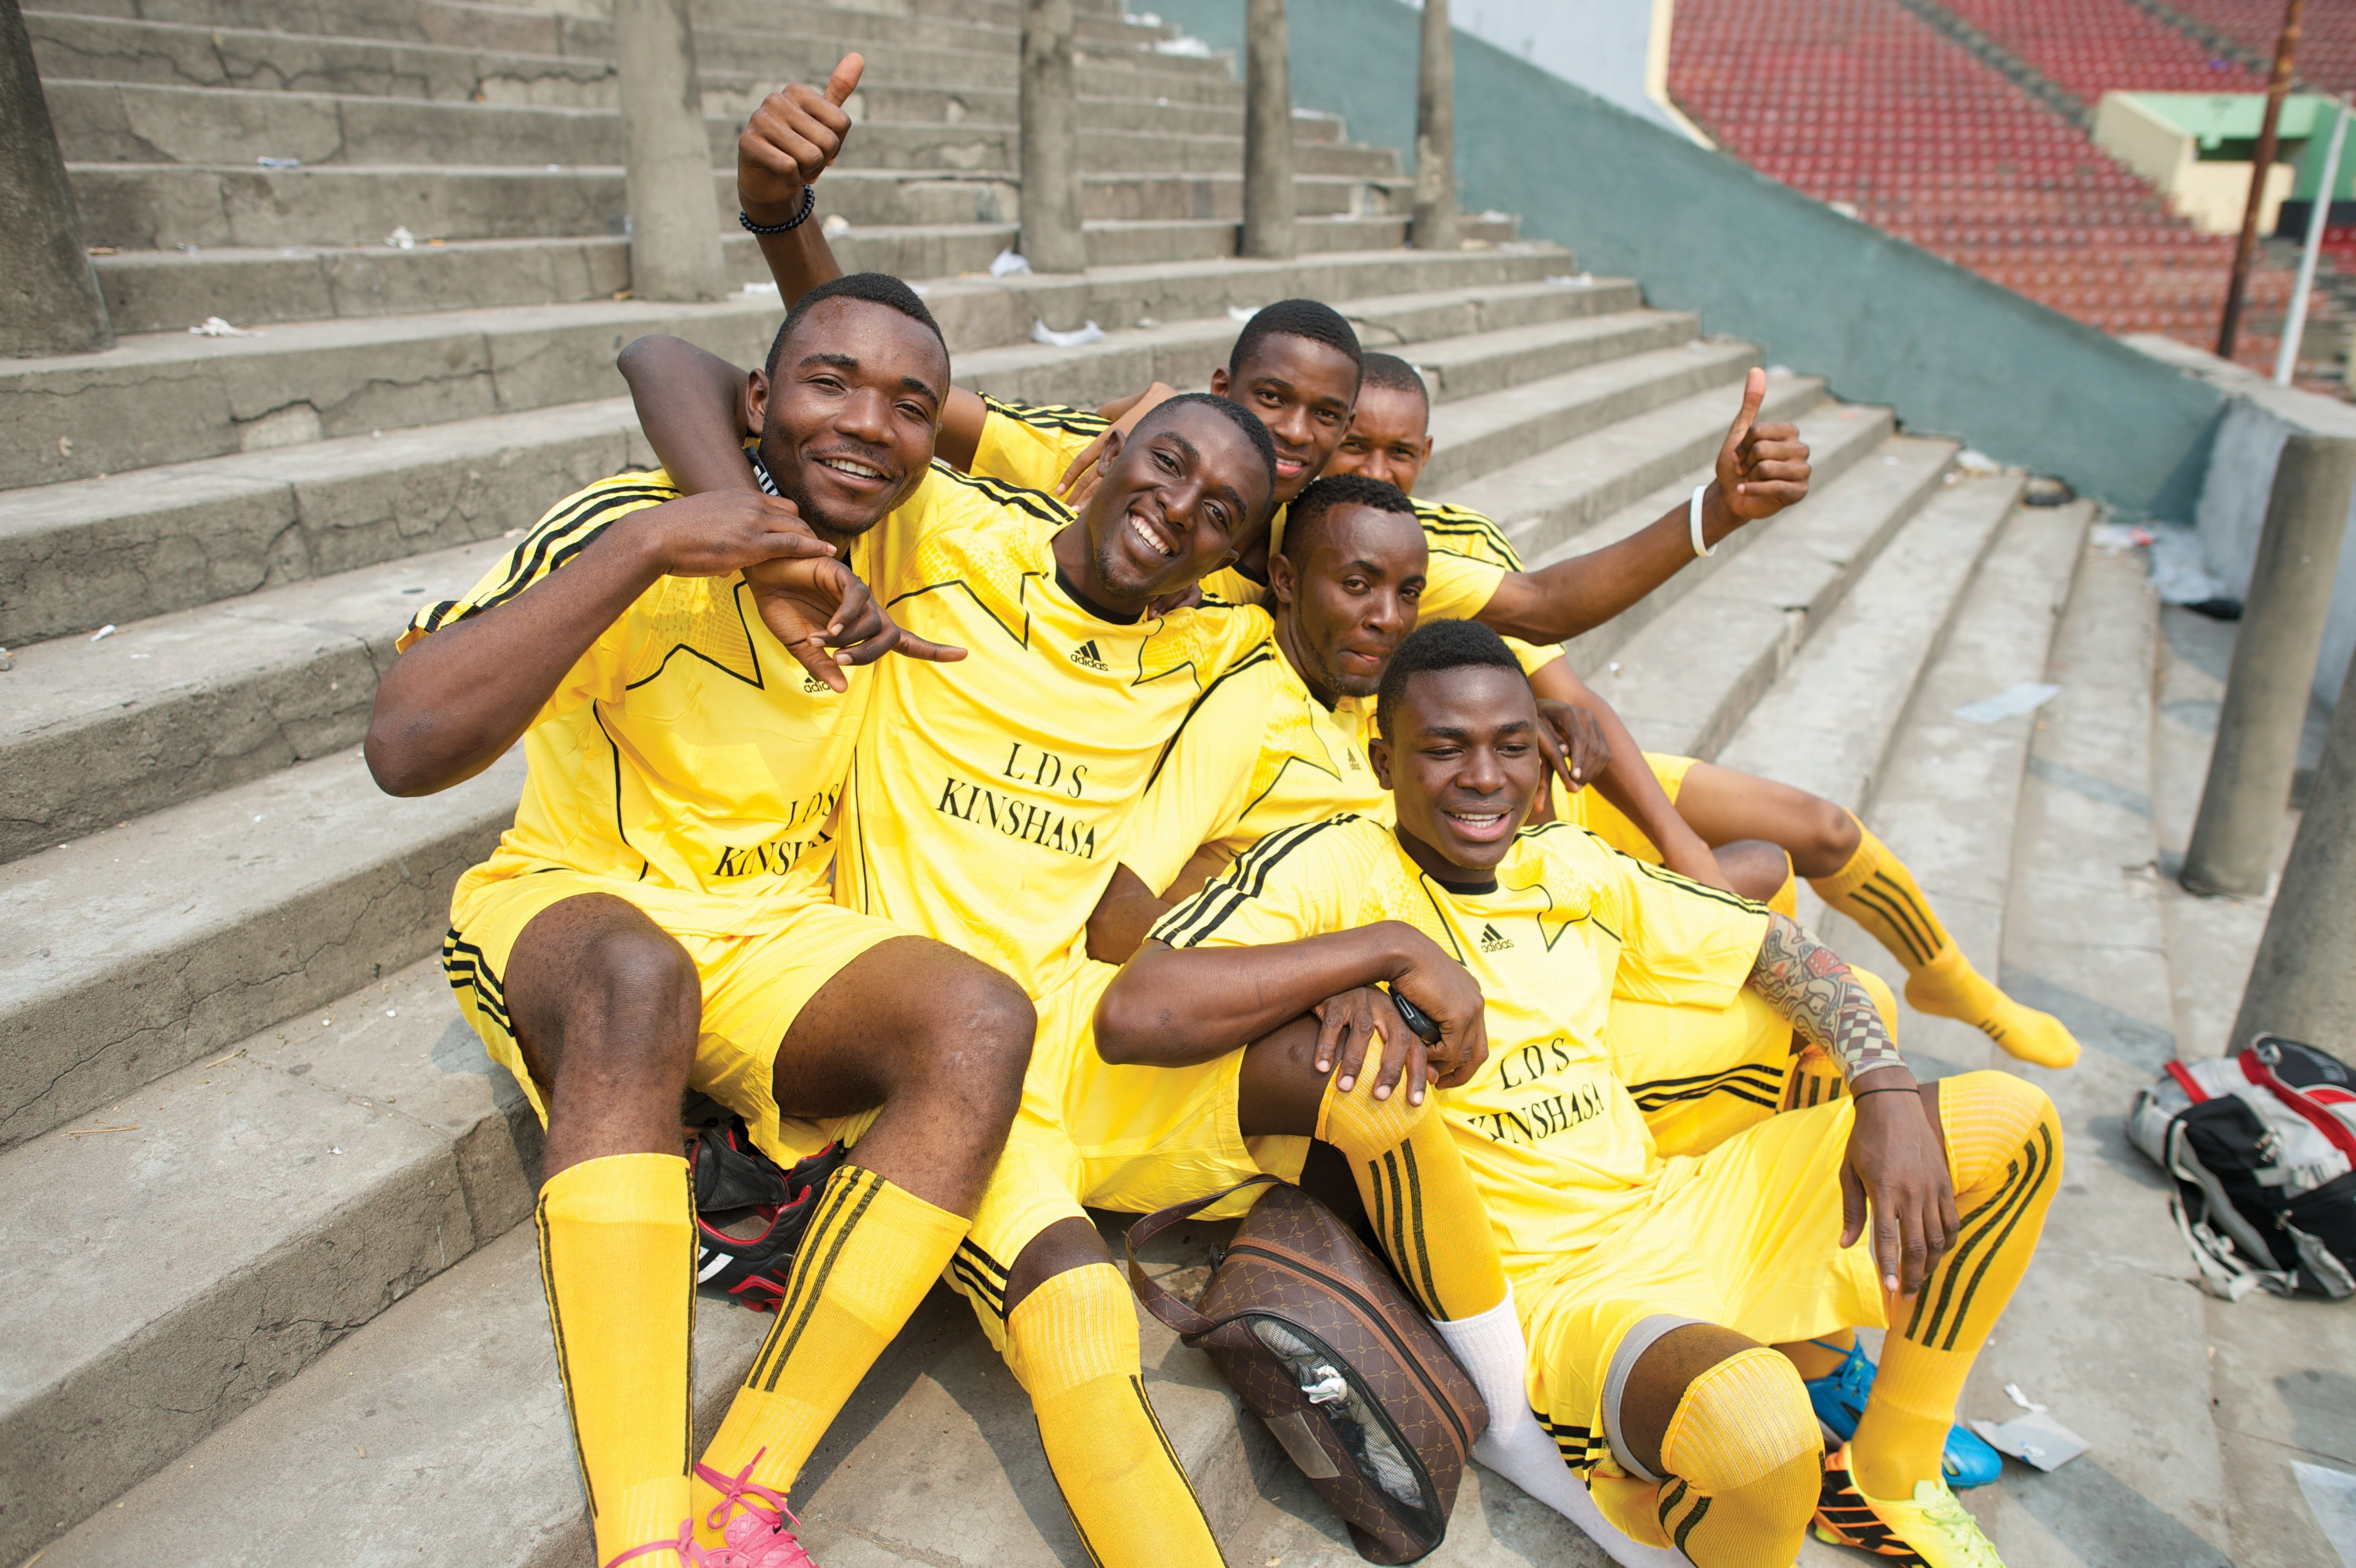 Soccer players from Africa sit in a group on stairs.